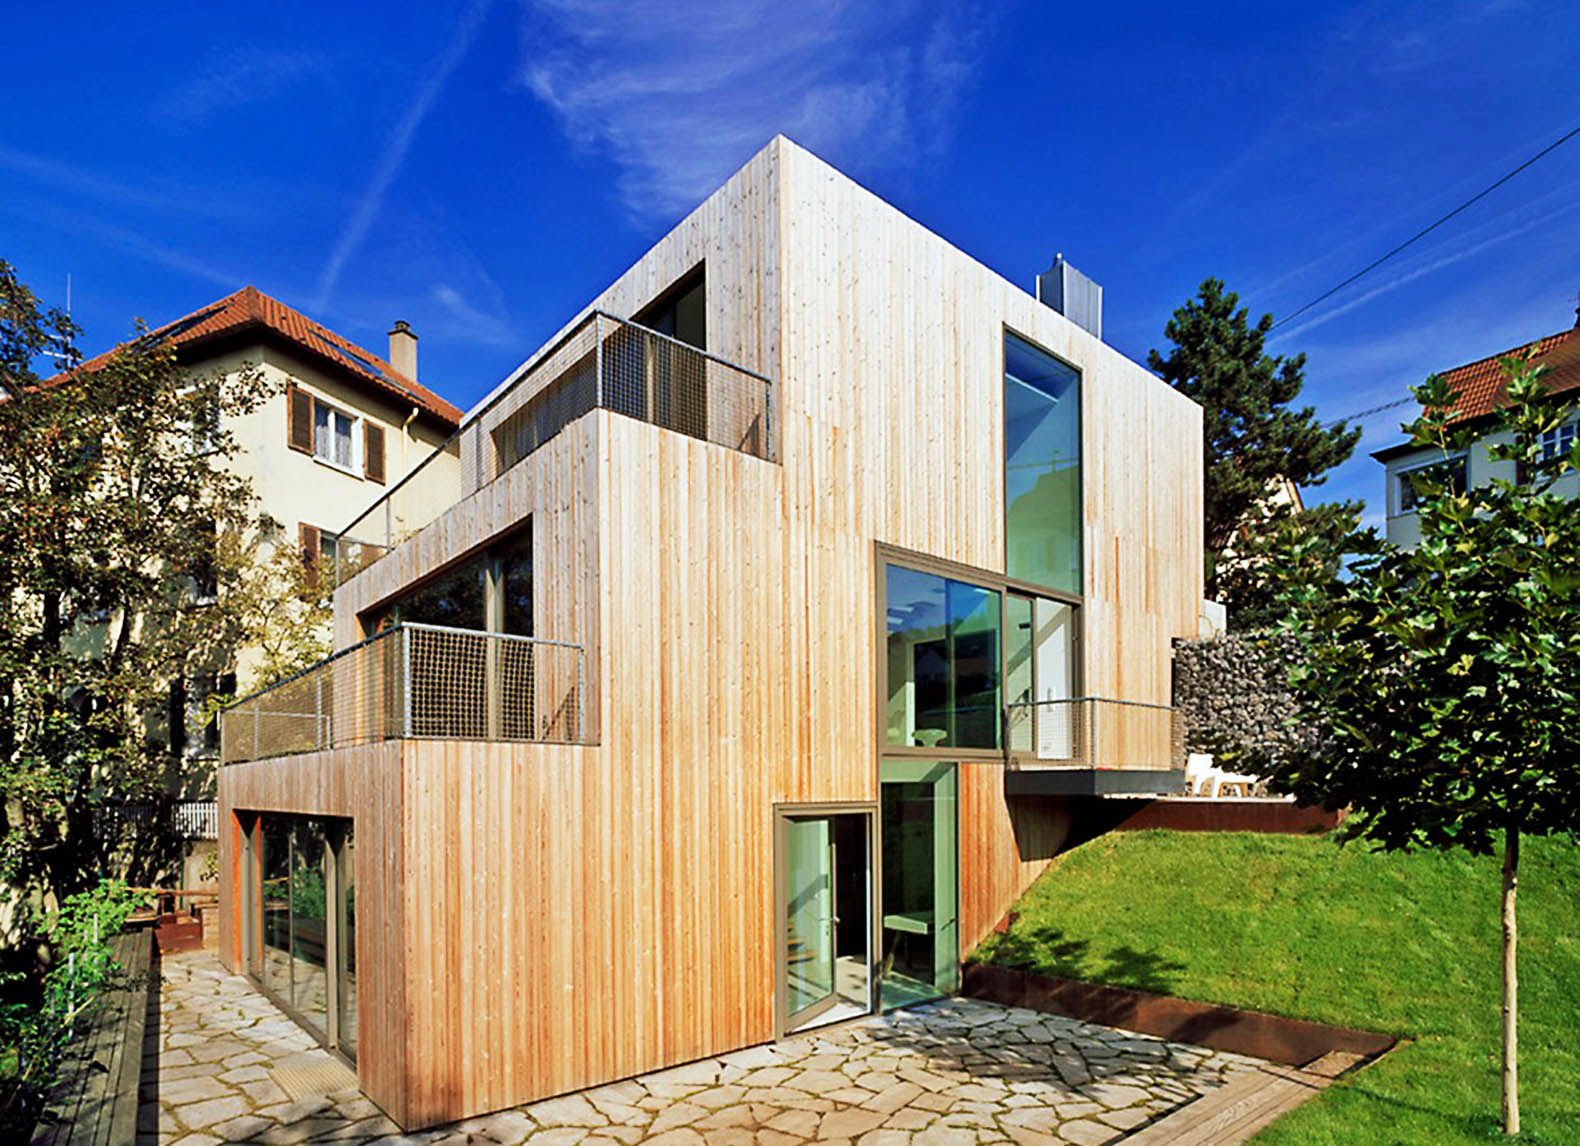 Haus Am Hang Staggered Timber Clad Haus Am Hang By Mvrdv Climbs A Stuttgart